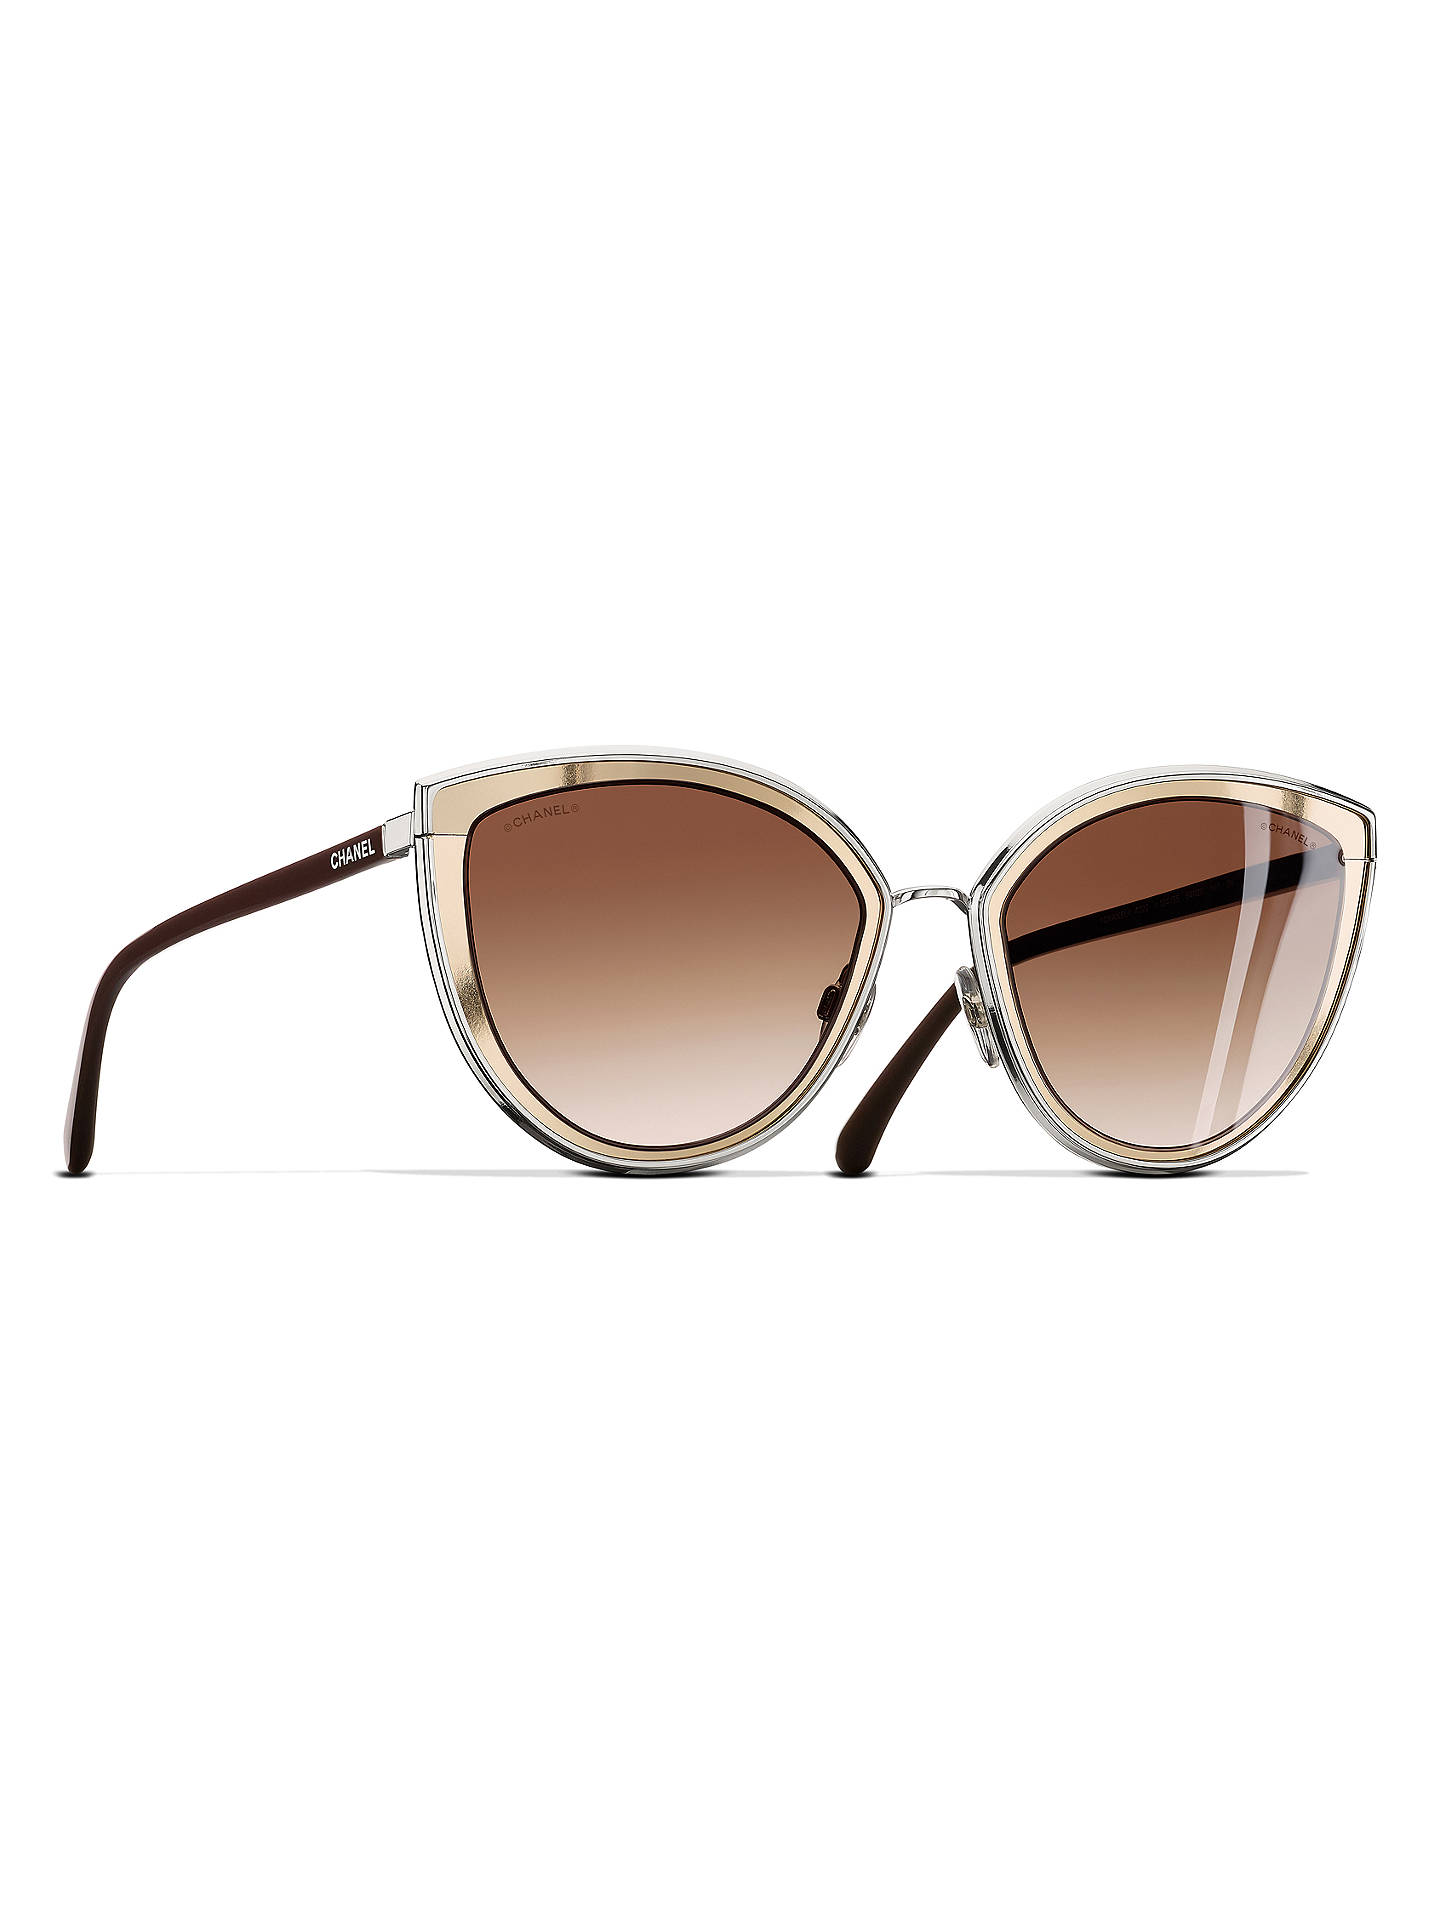 CHANEL Cat Eye Sunglasses CH4222 Silver at John Lewis & Partners